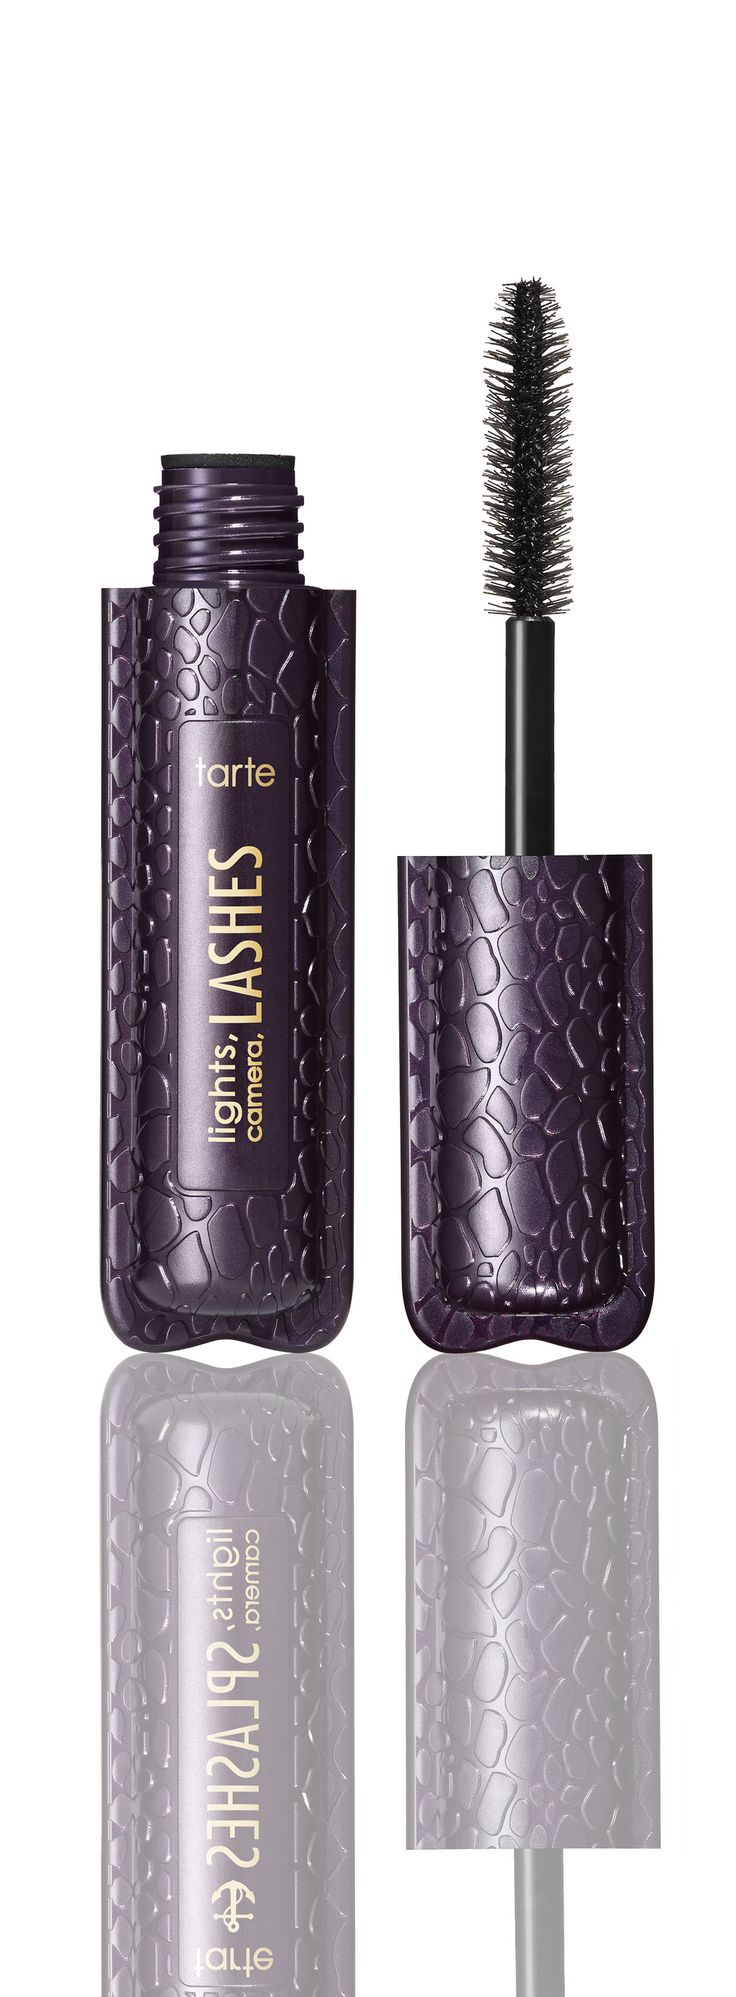 Image result for tarte travel size